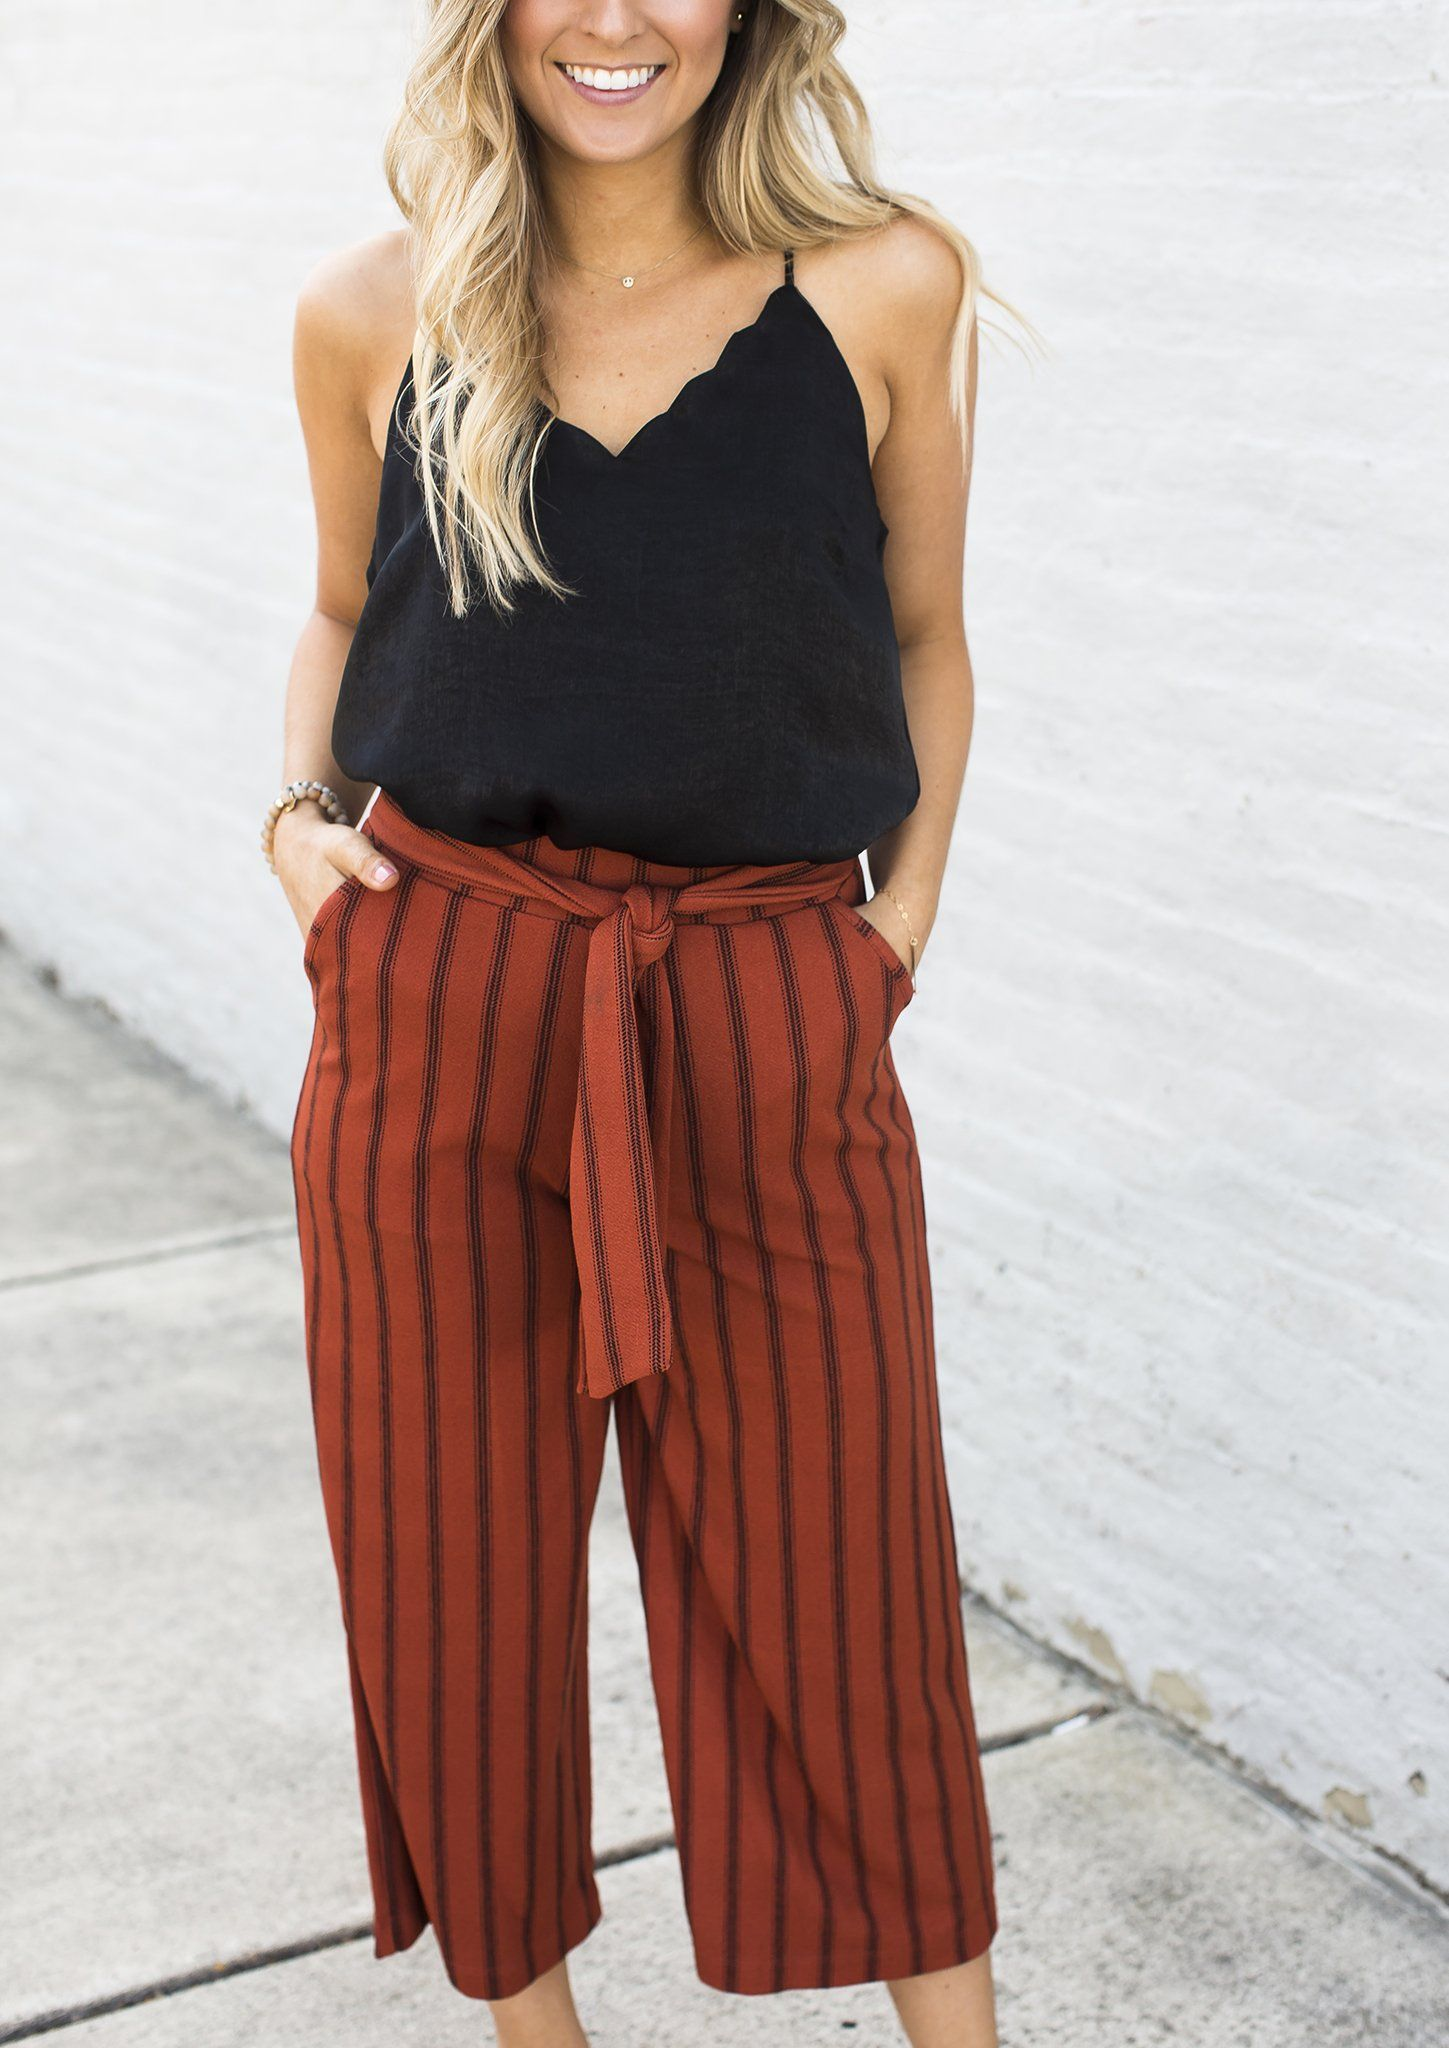 abdaab6d207a97 Rust Black Striped Cropped Pants in 2019